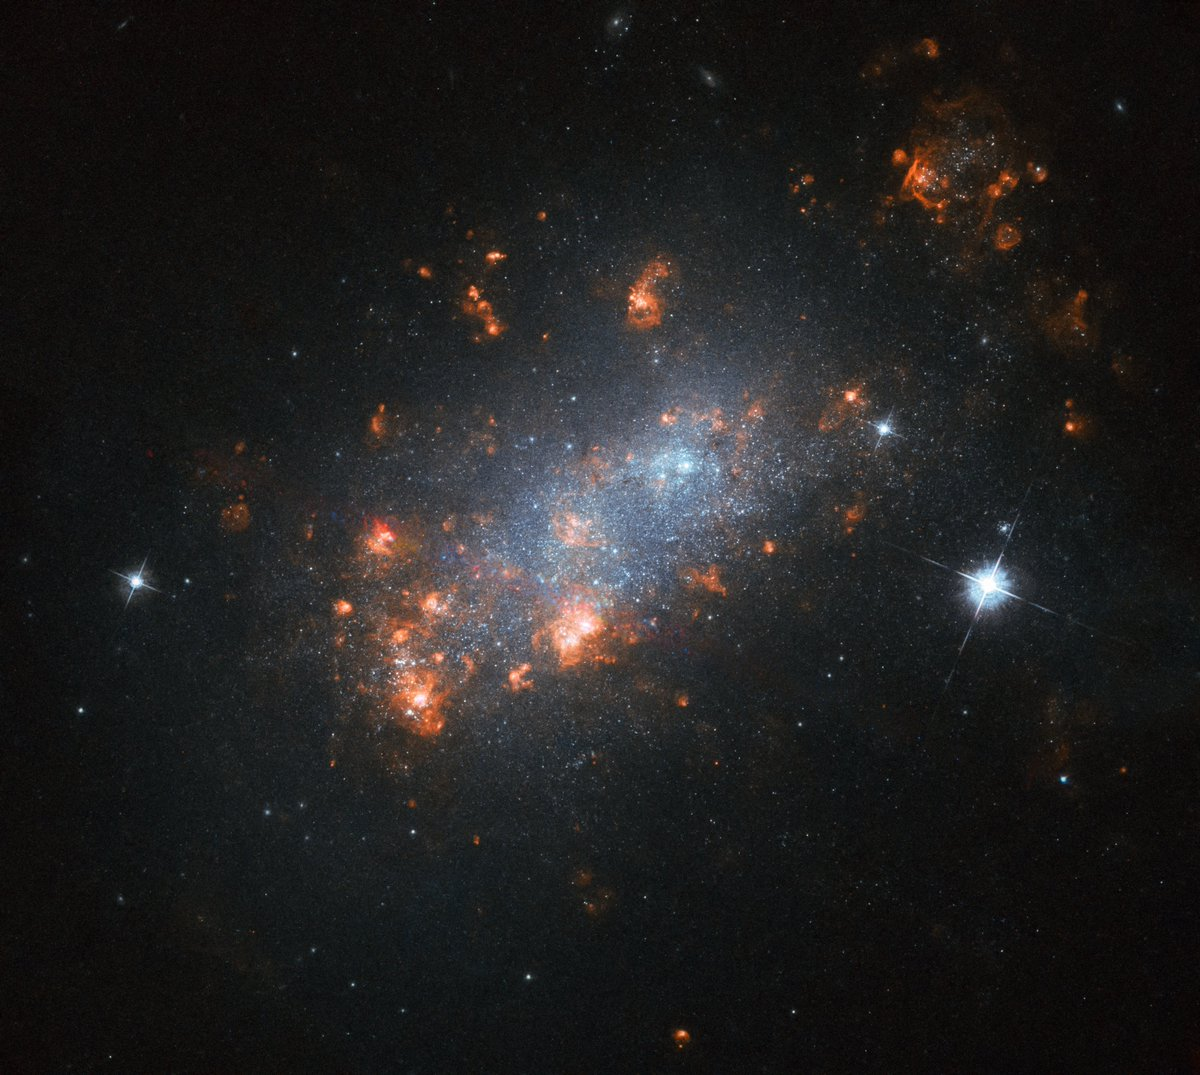 Cherry blossoms may have flowered months ago but the galactic version is always in bloom 🌸 The many bright blooms within this cherry blossom-resembling galaxy are in fact stellar nurseries — regions where new stars are springing to life. Uncover more: go.nasa.gov/2JuLMoF